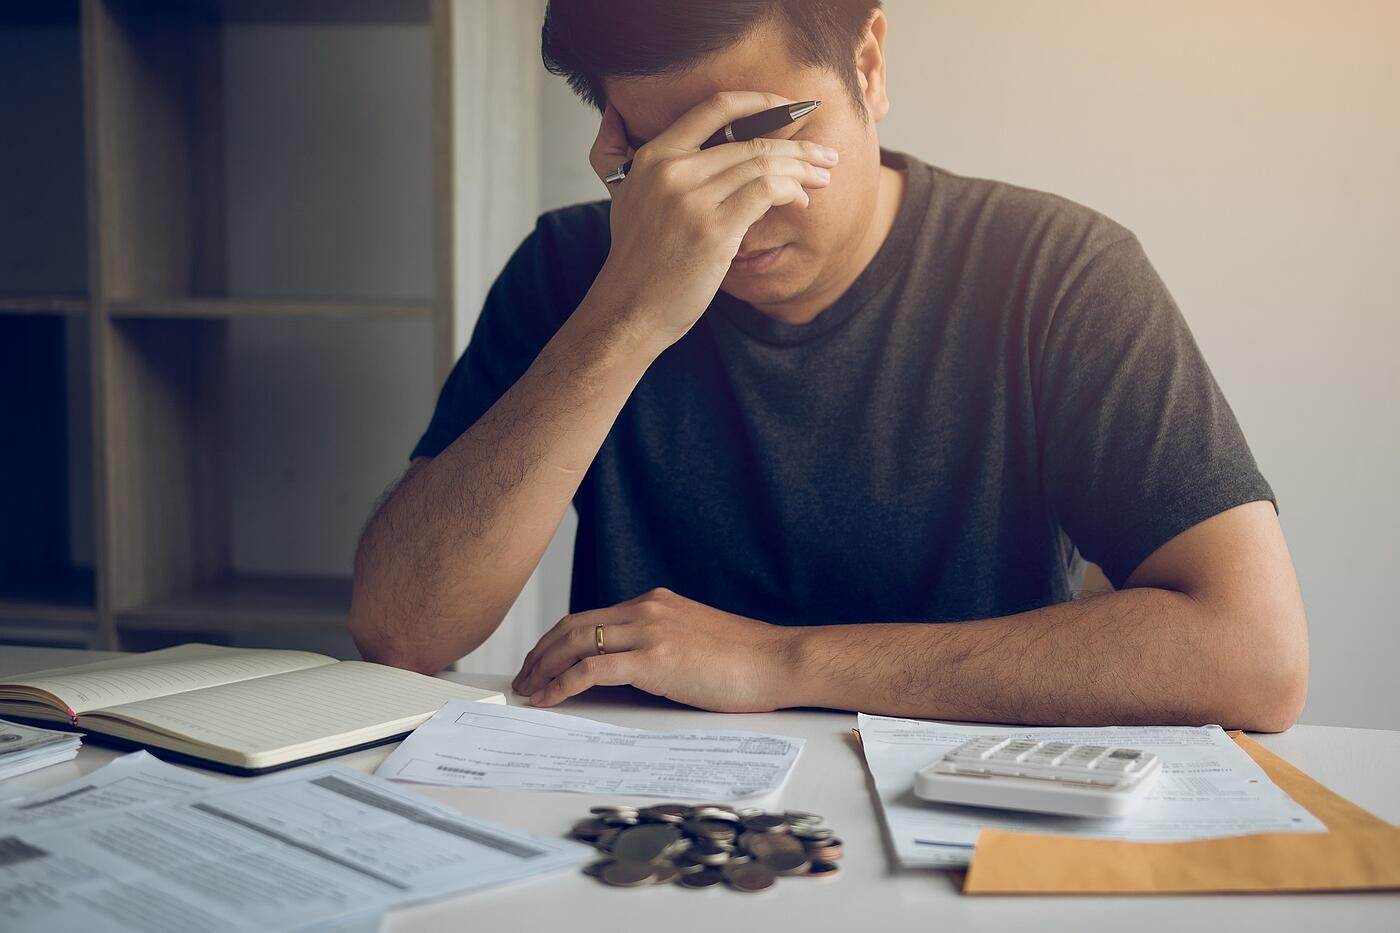 men-are-stressed-about-financial-problems-with-inv-5F6THK7